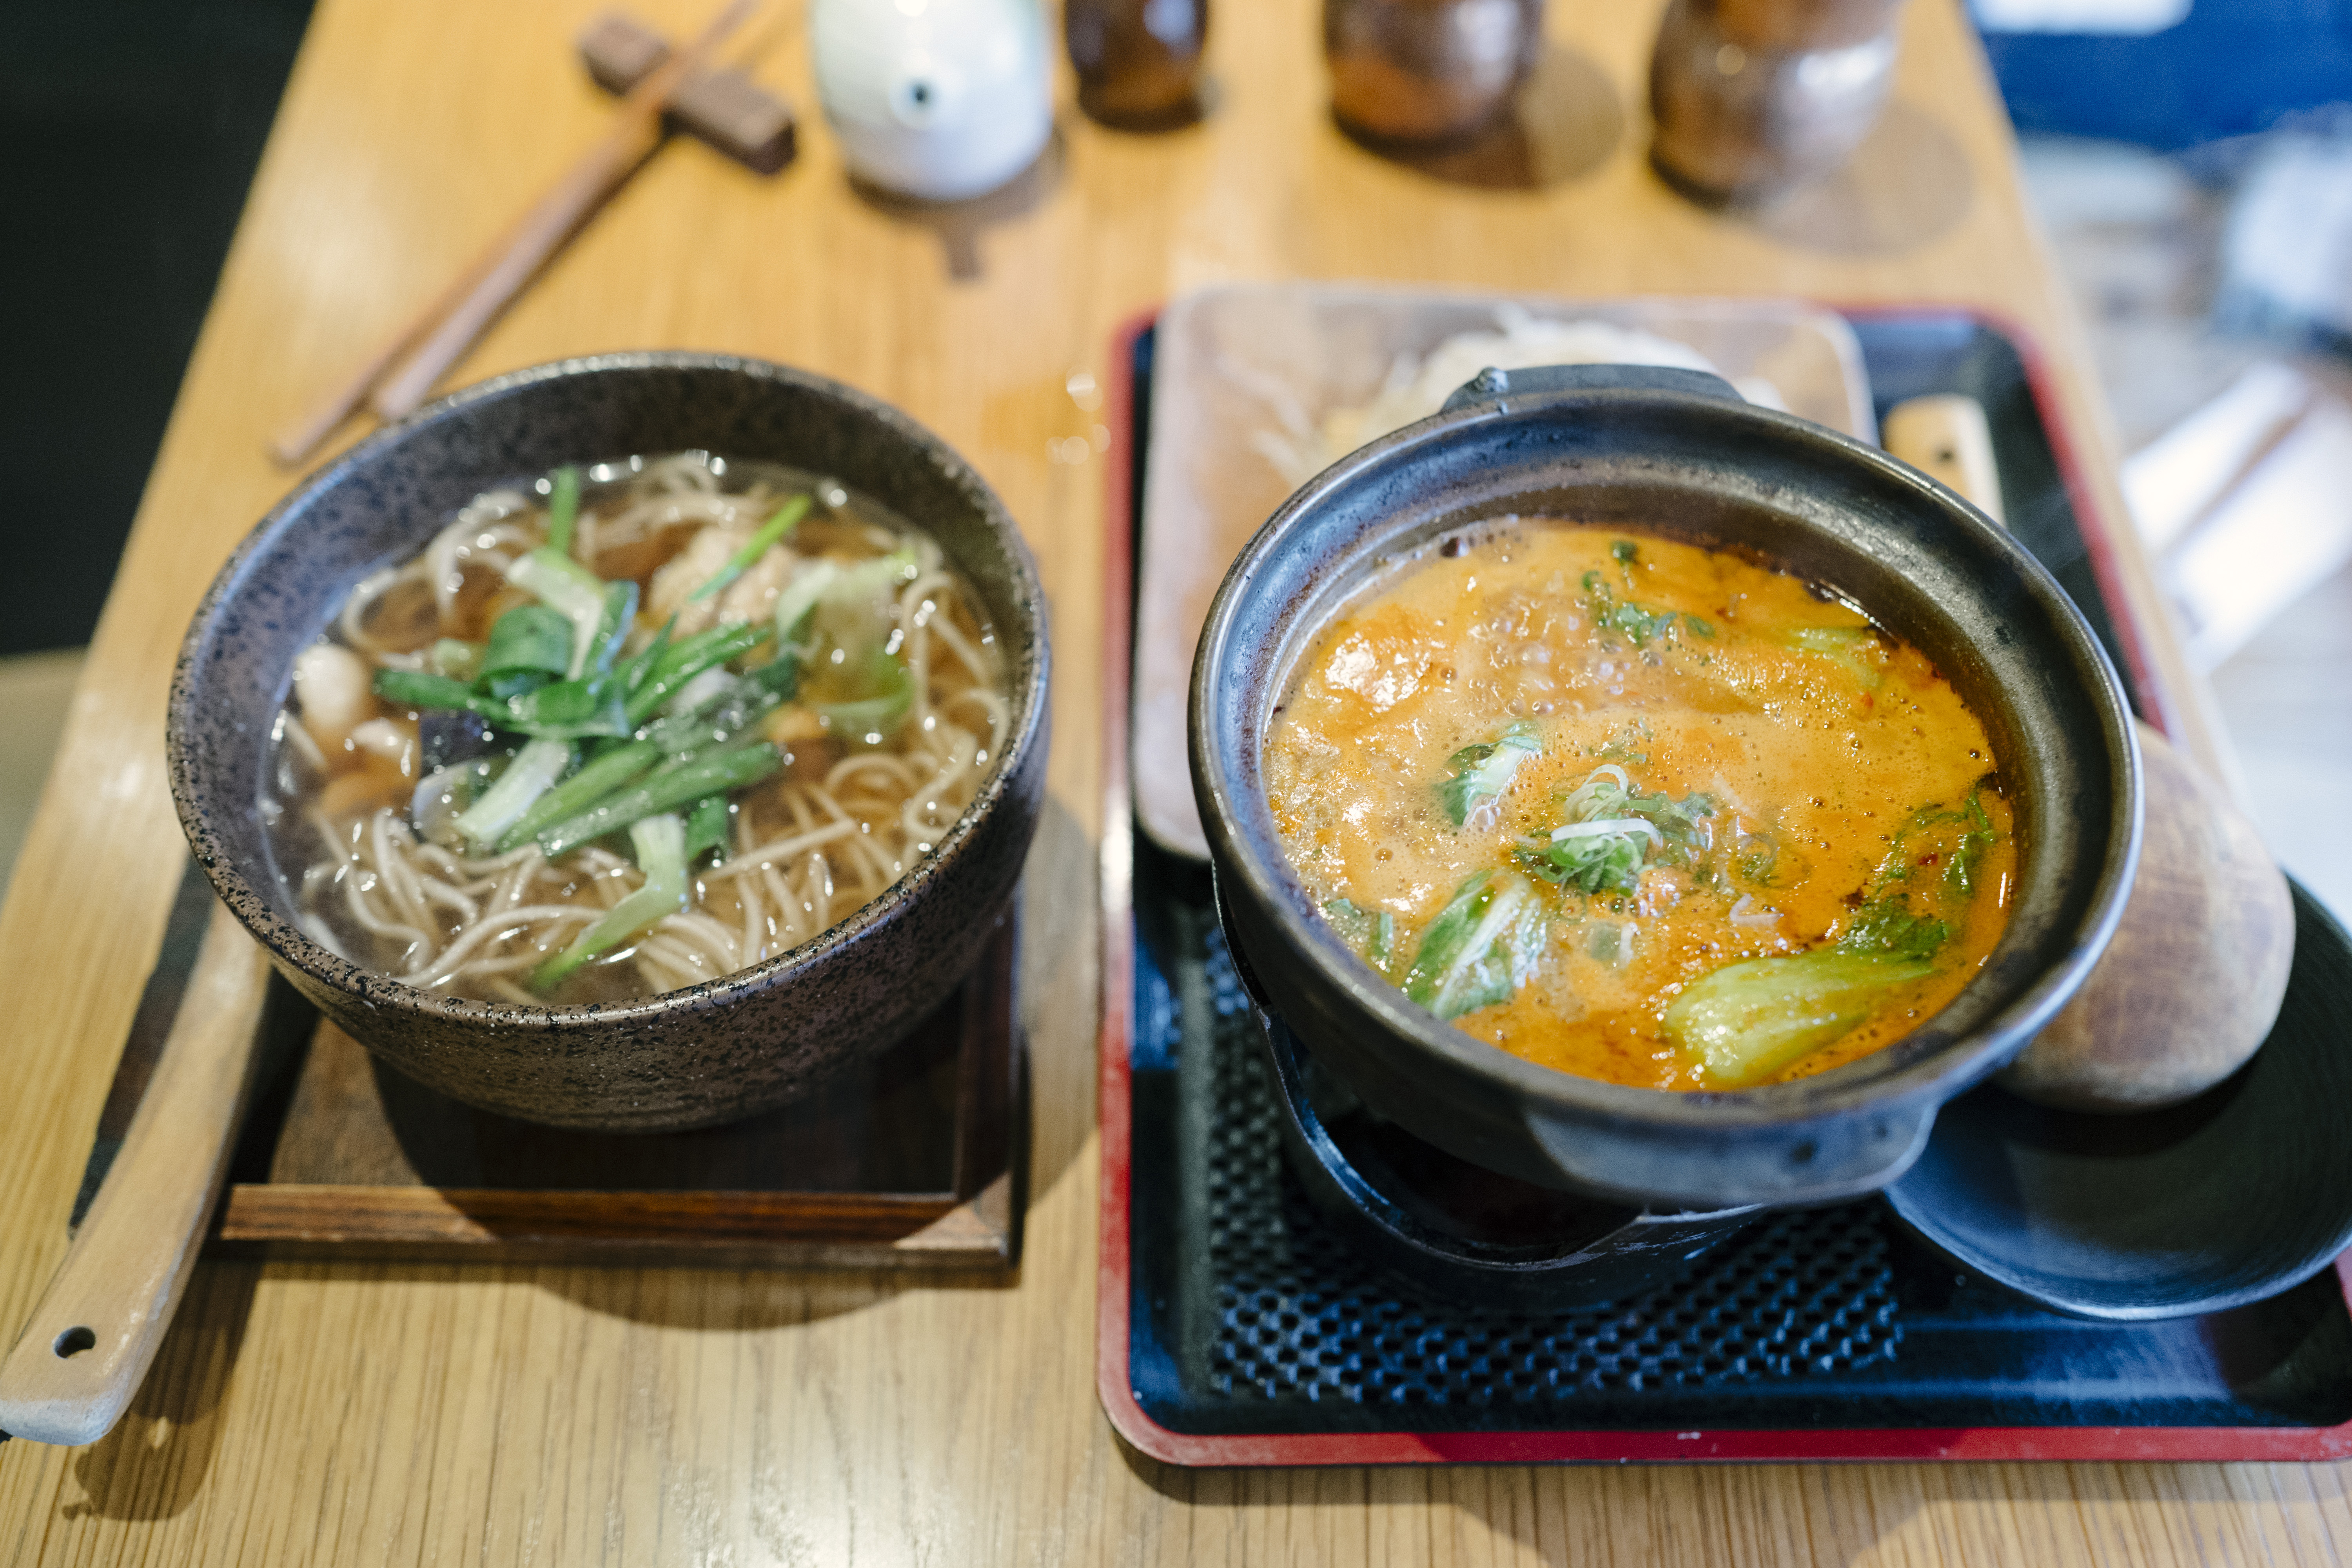 The Best Places To Eat Vegetarian Food In NYC - New York - The